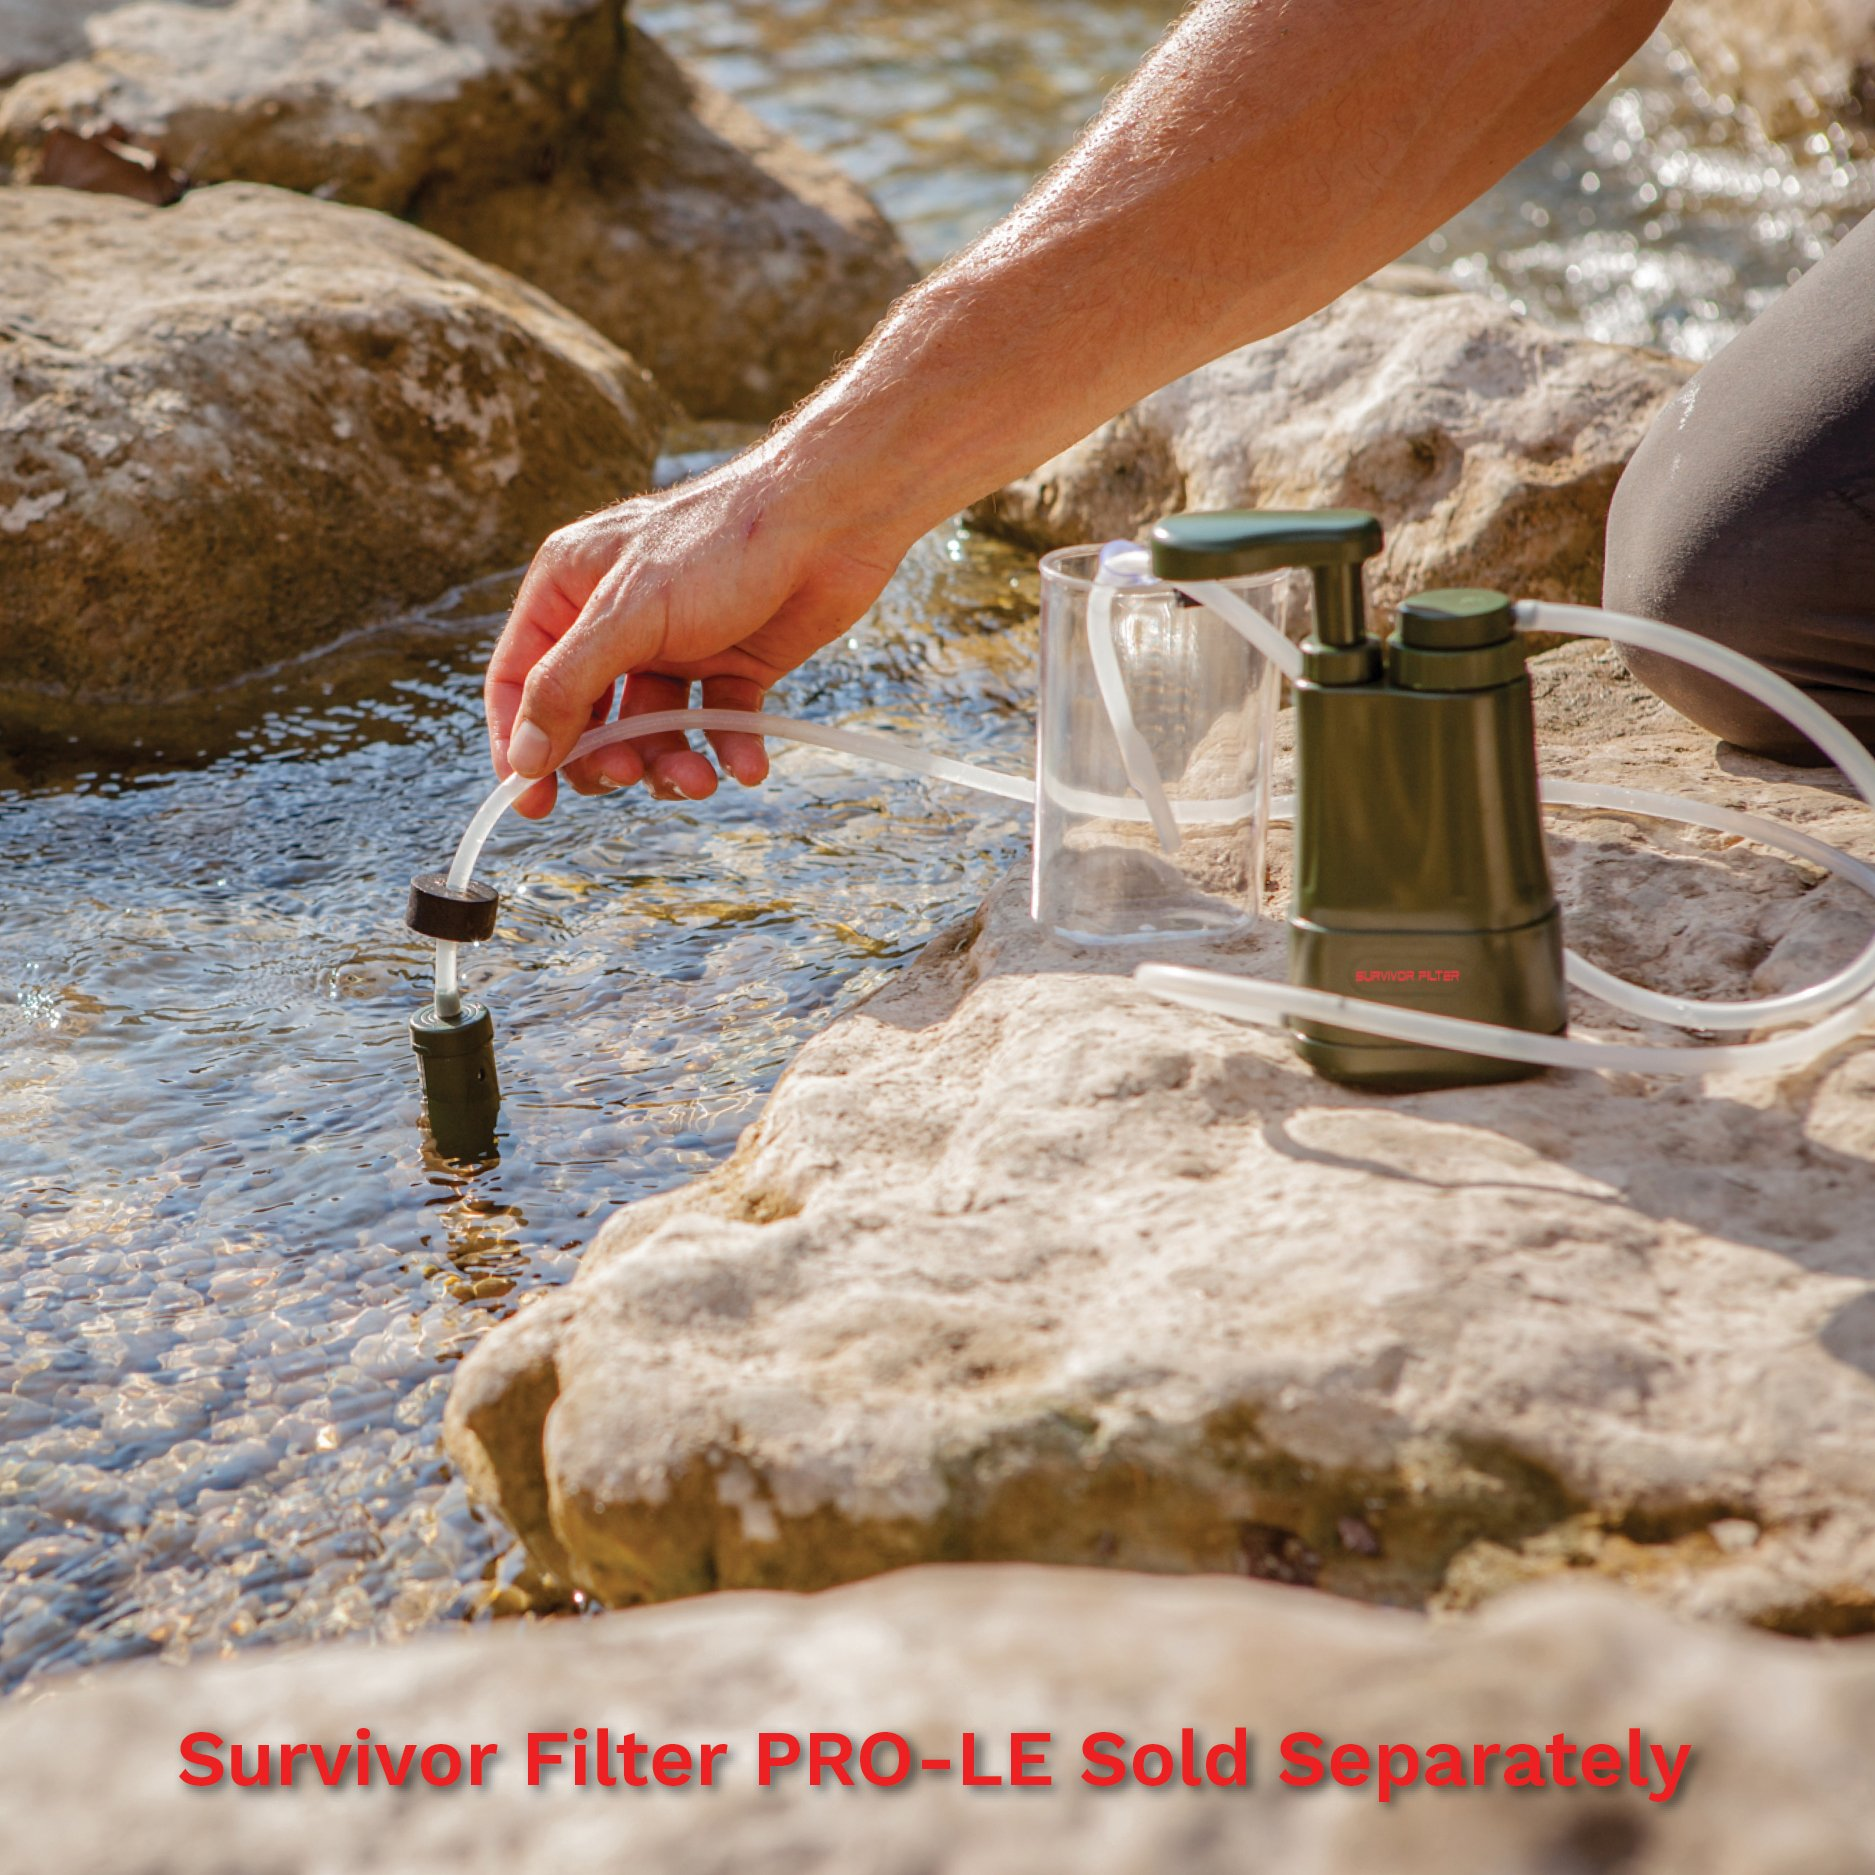 Survivor Filter Extra Replacement Filters for The PRO Portable Water Filter (Extra Pre-Filter Kit) by Survivor Filter (Image #5)